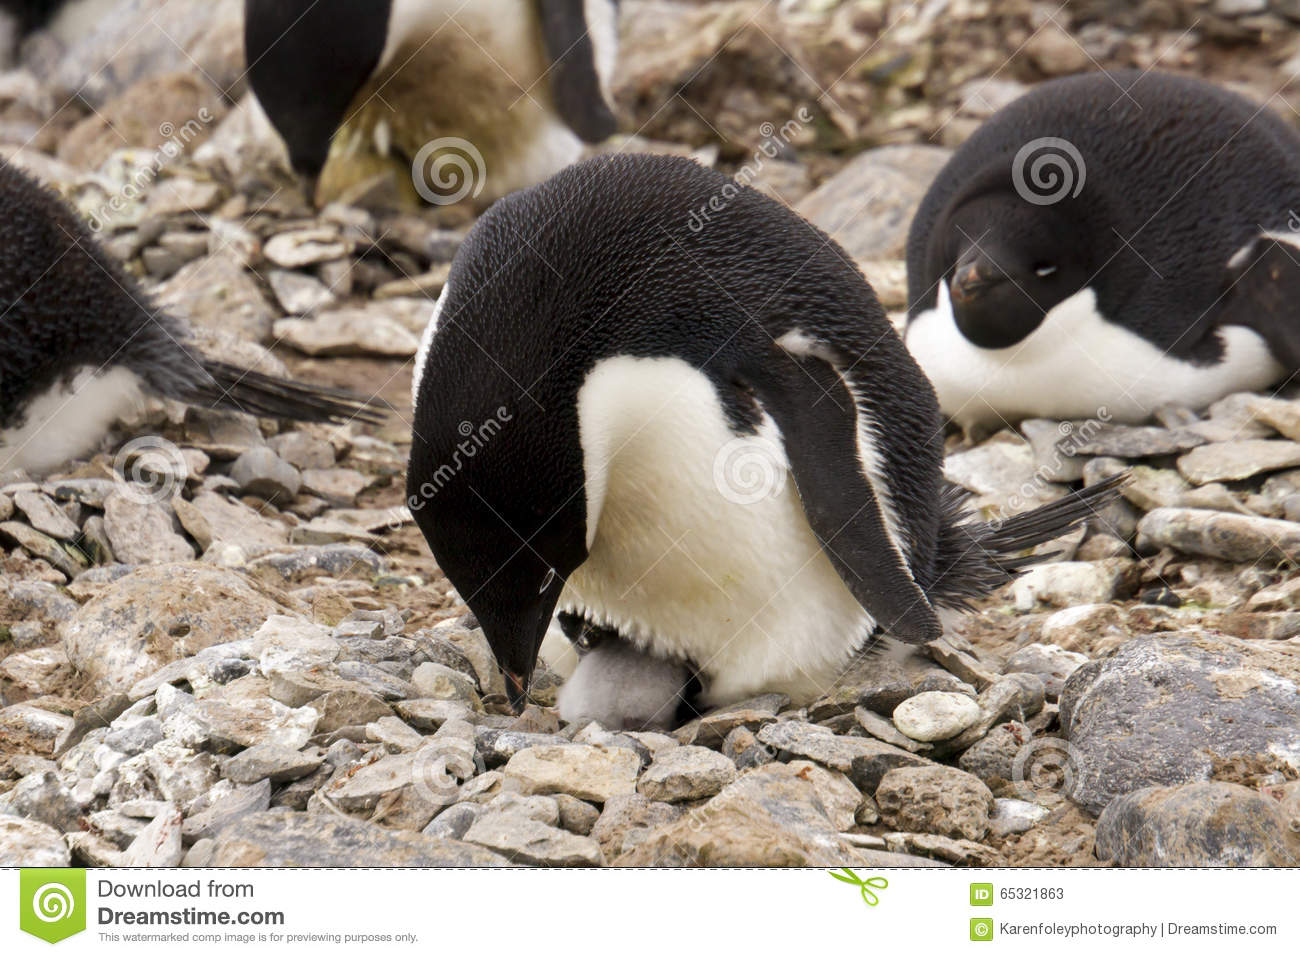 Penguin chick hatching - photo#19